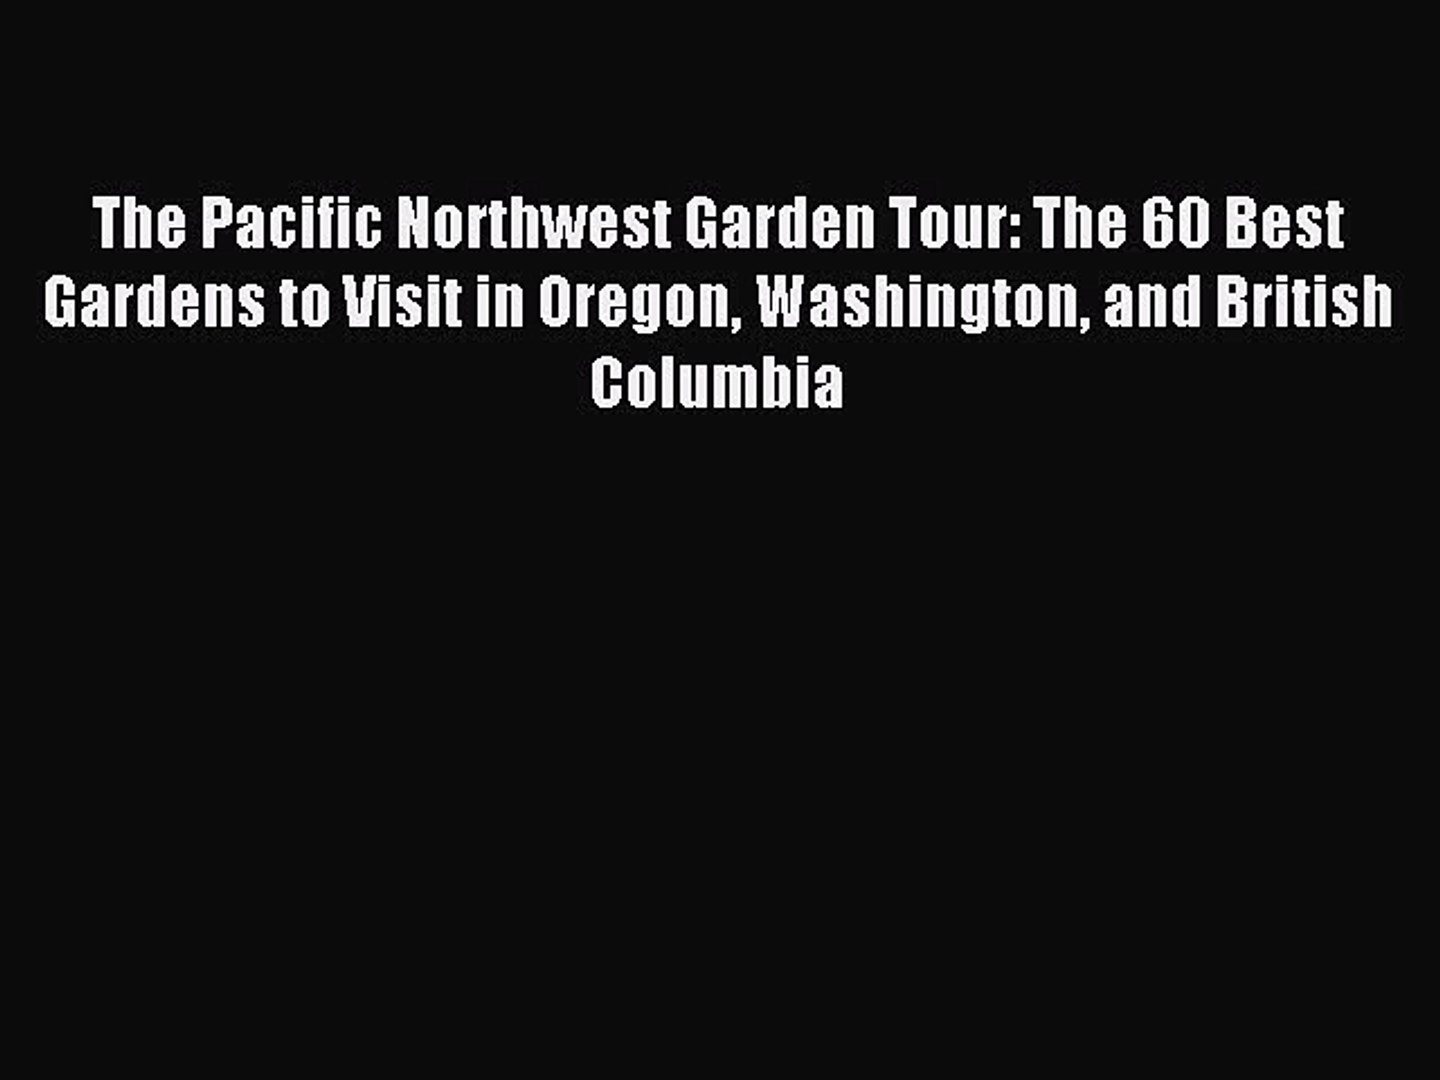 Read The Pacific Northwest Garden Tour: The 60 Best Gardens to Visit in Oregon Washington and